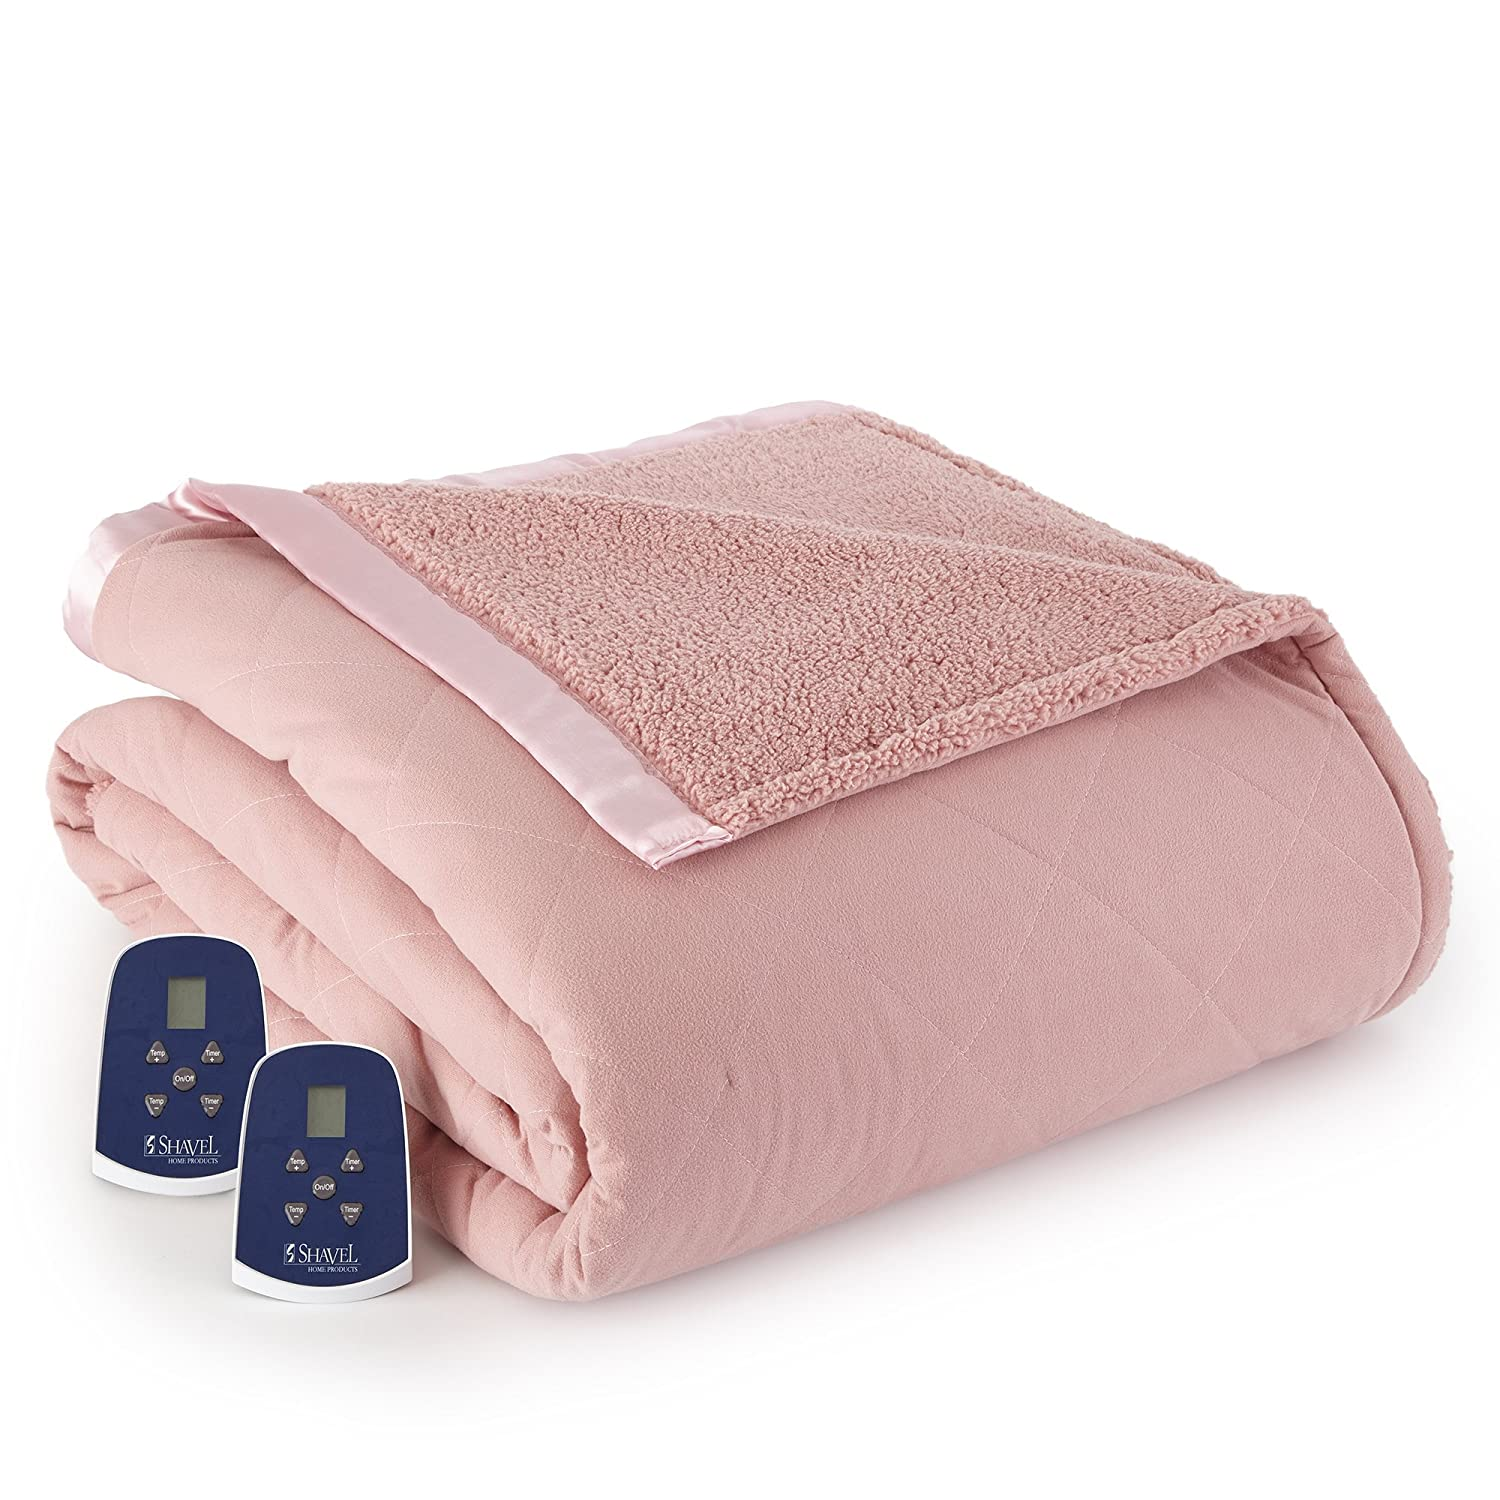 Sand King Thermee Micro Flannel Electric Blanket with Sherpa Back